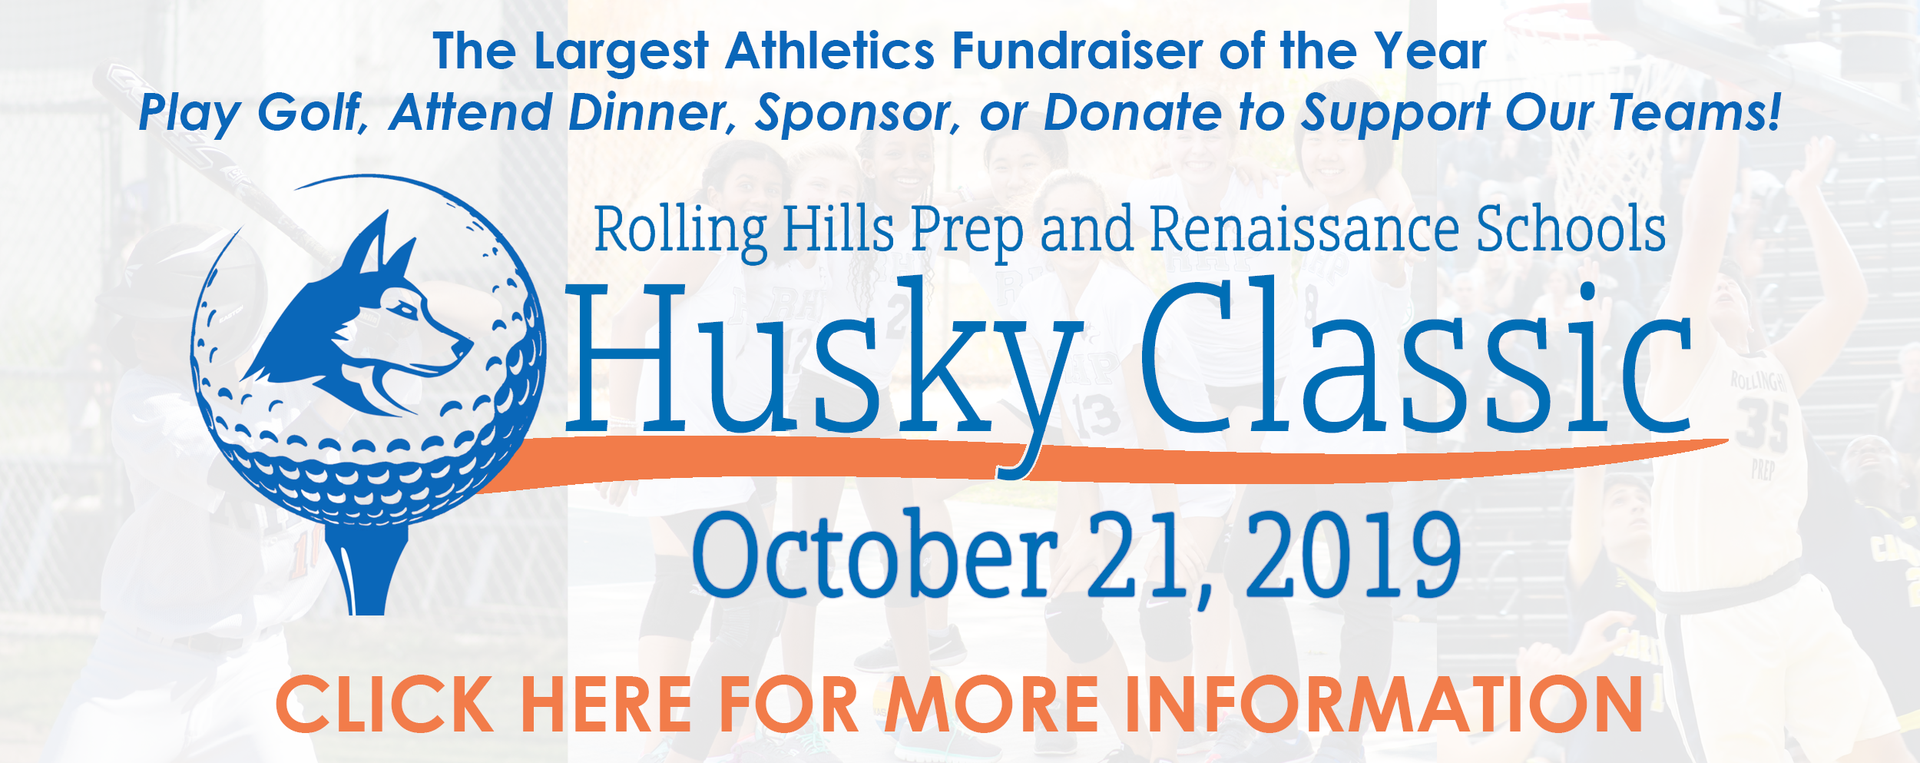 Husky Classic - October 21 - Largest Athletic Fundraiser of The Year - Click here for more information